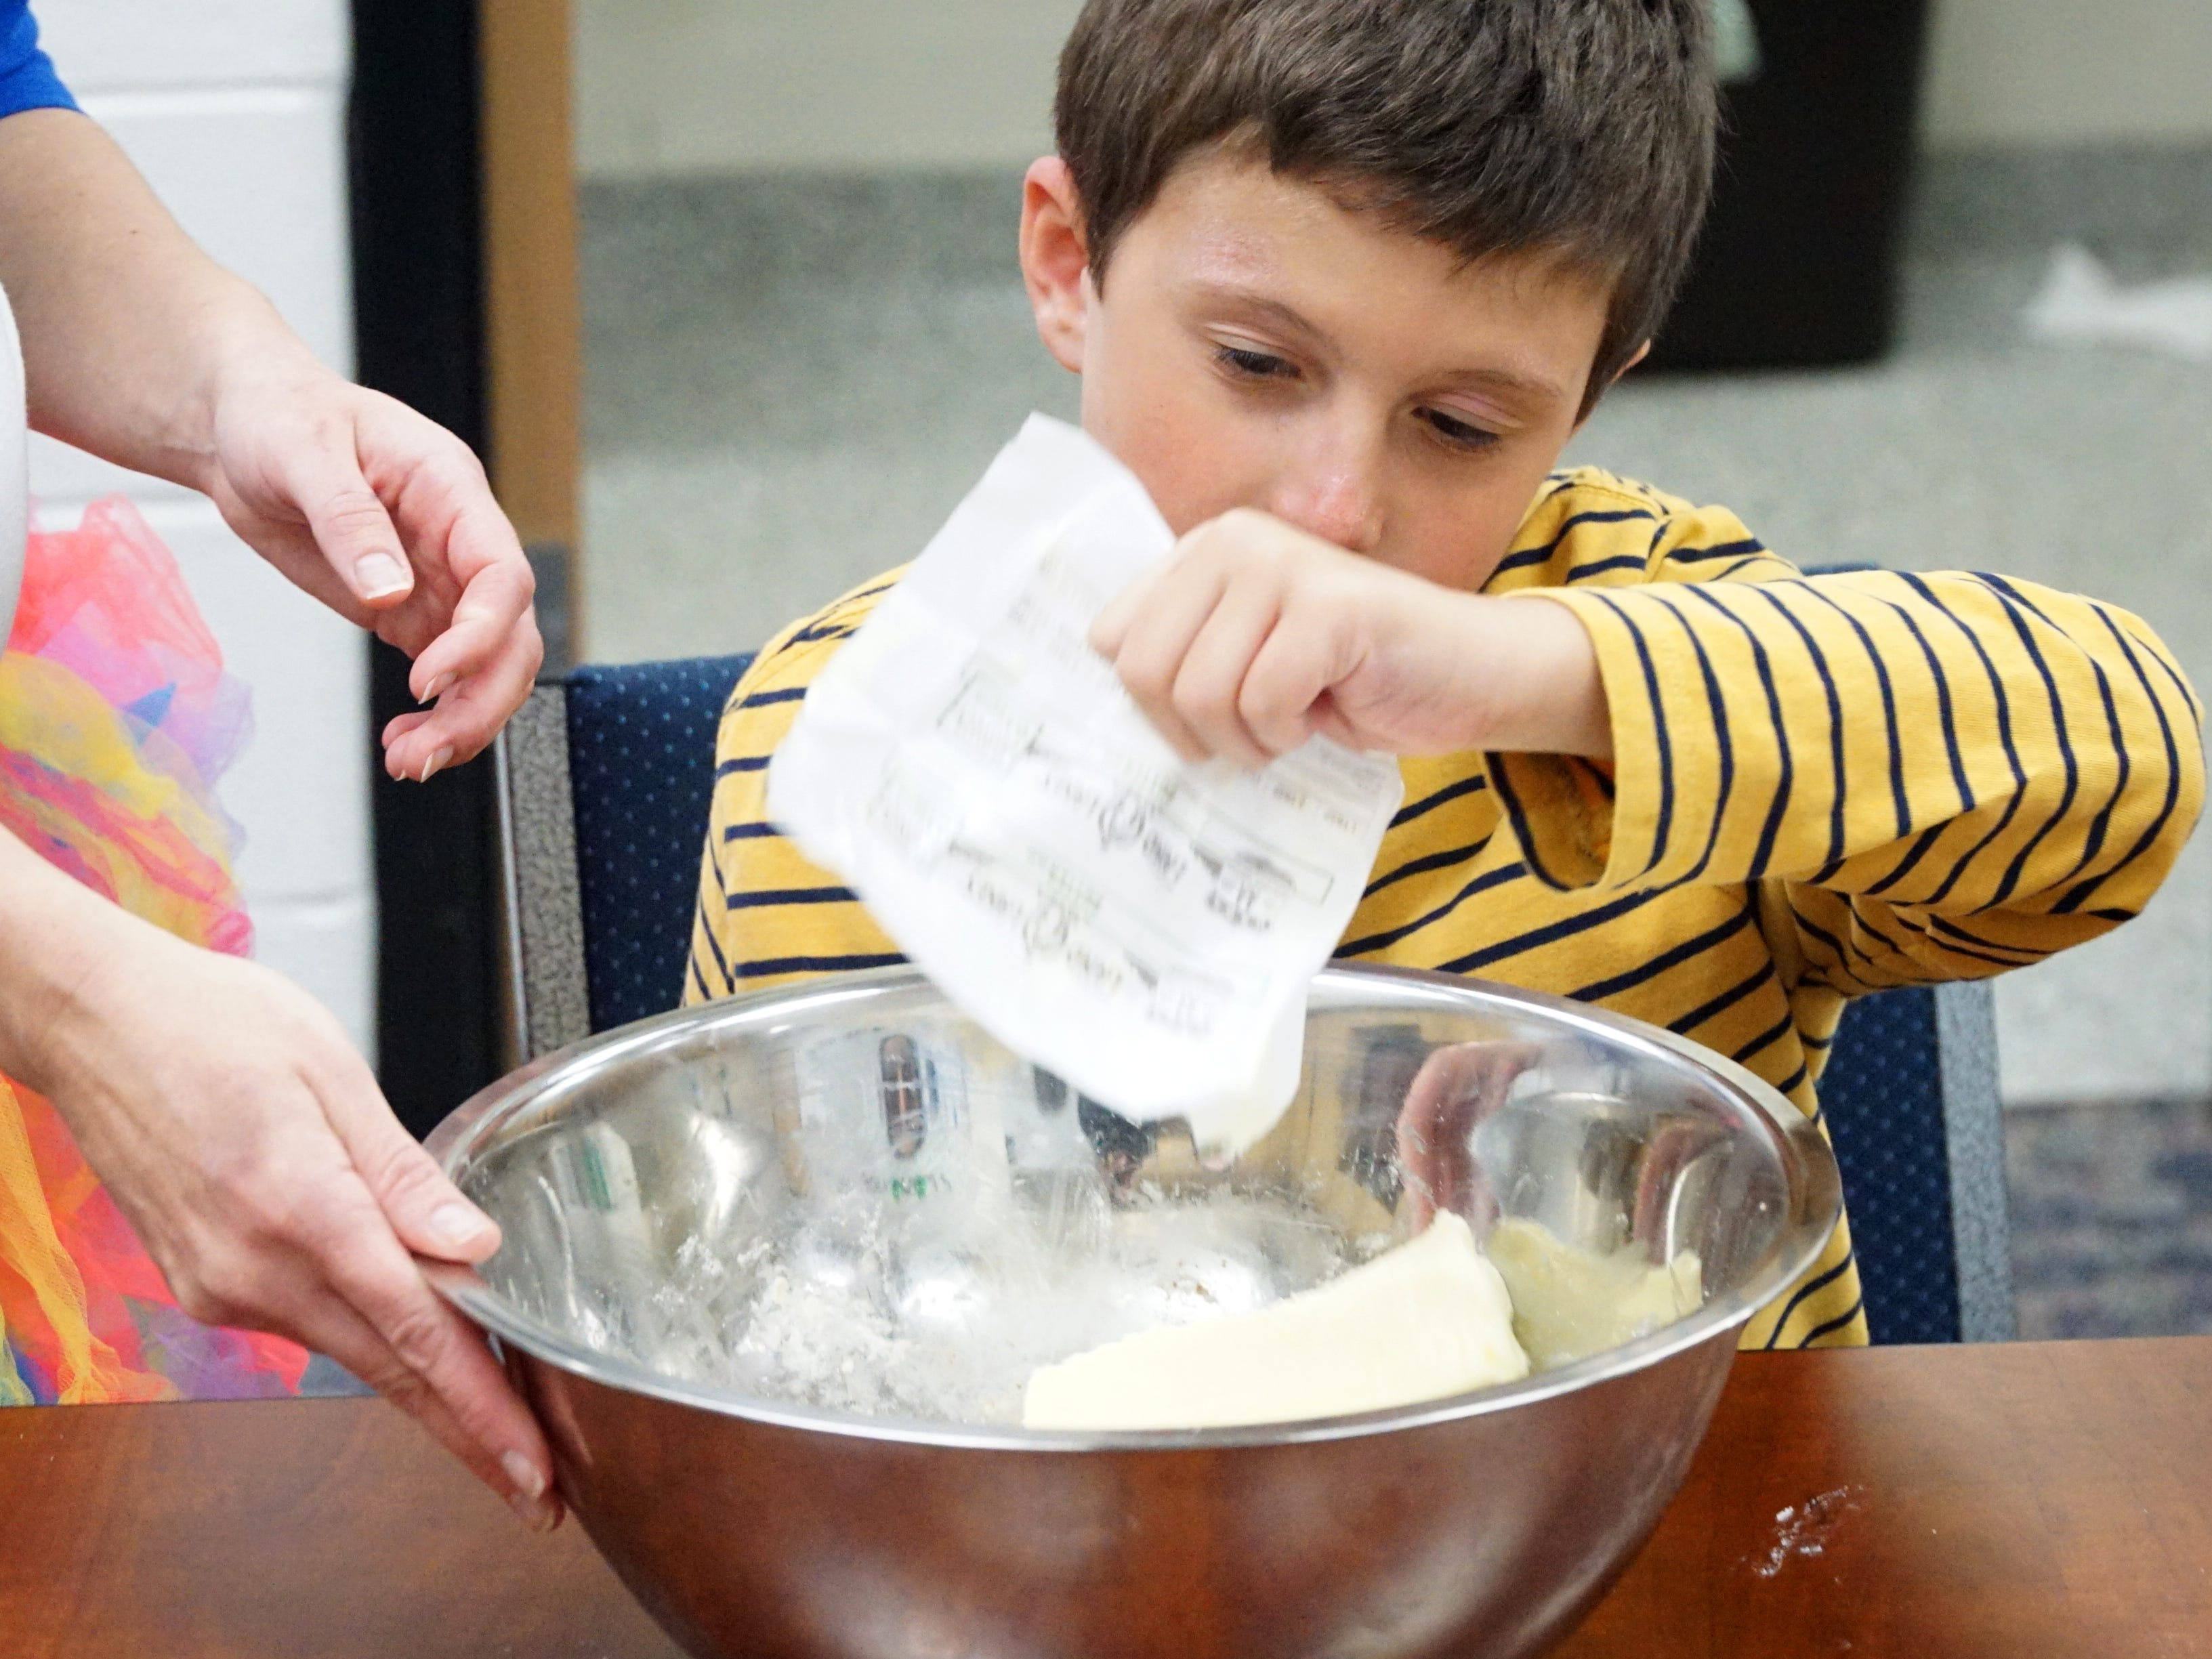 Harlan Elementary School student Christian Vuljaj drops a stick of butter into some cookie mix on Feb. 28 as the school's group of special needs students work on baking some treats to help raise funds so that they can purchase a service dog.